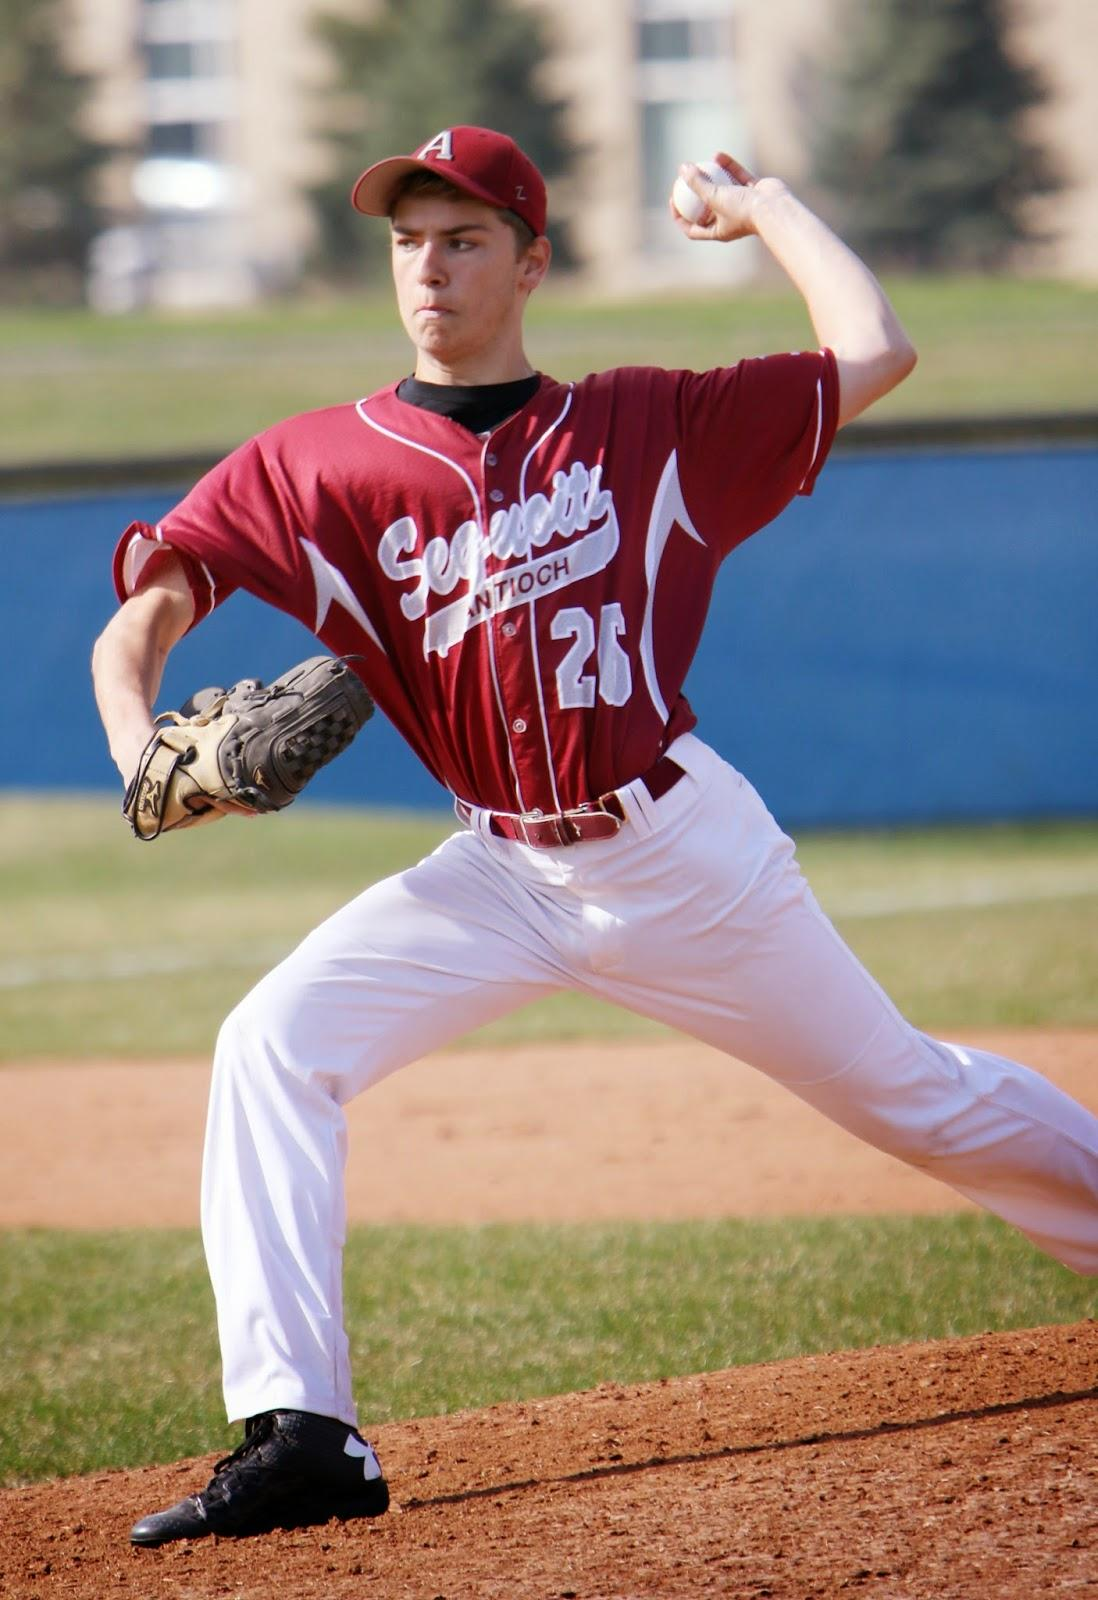 Michael Mentone pitching in a game against Warren Township High School on April 17, 2015.